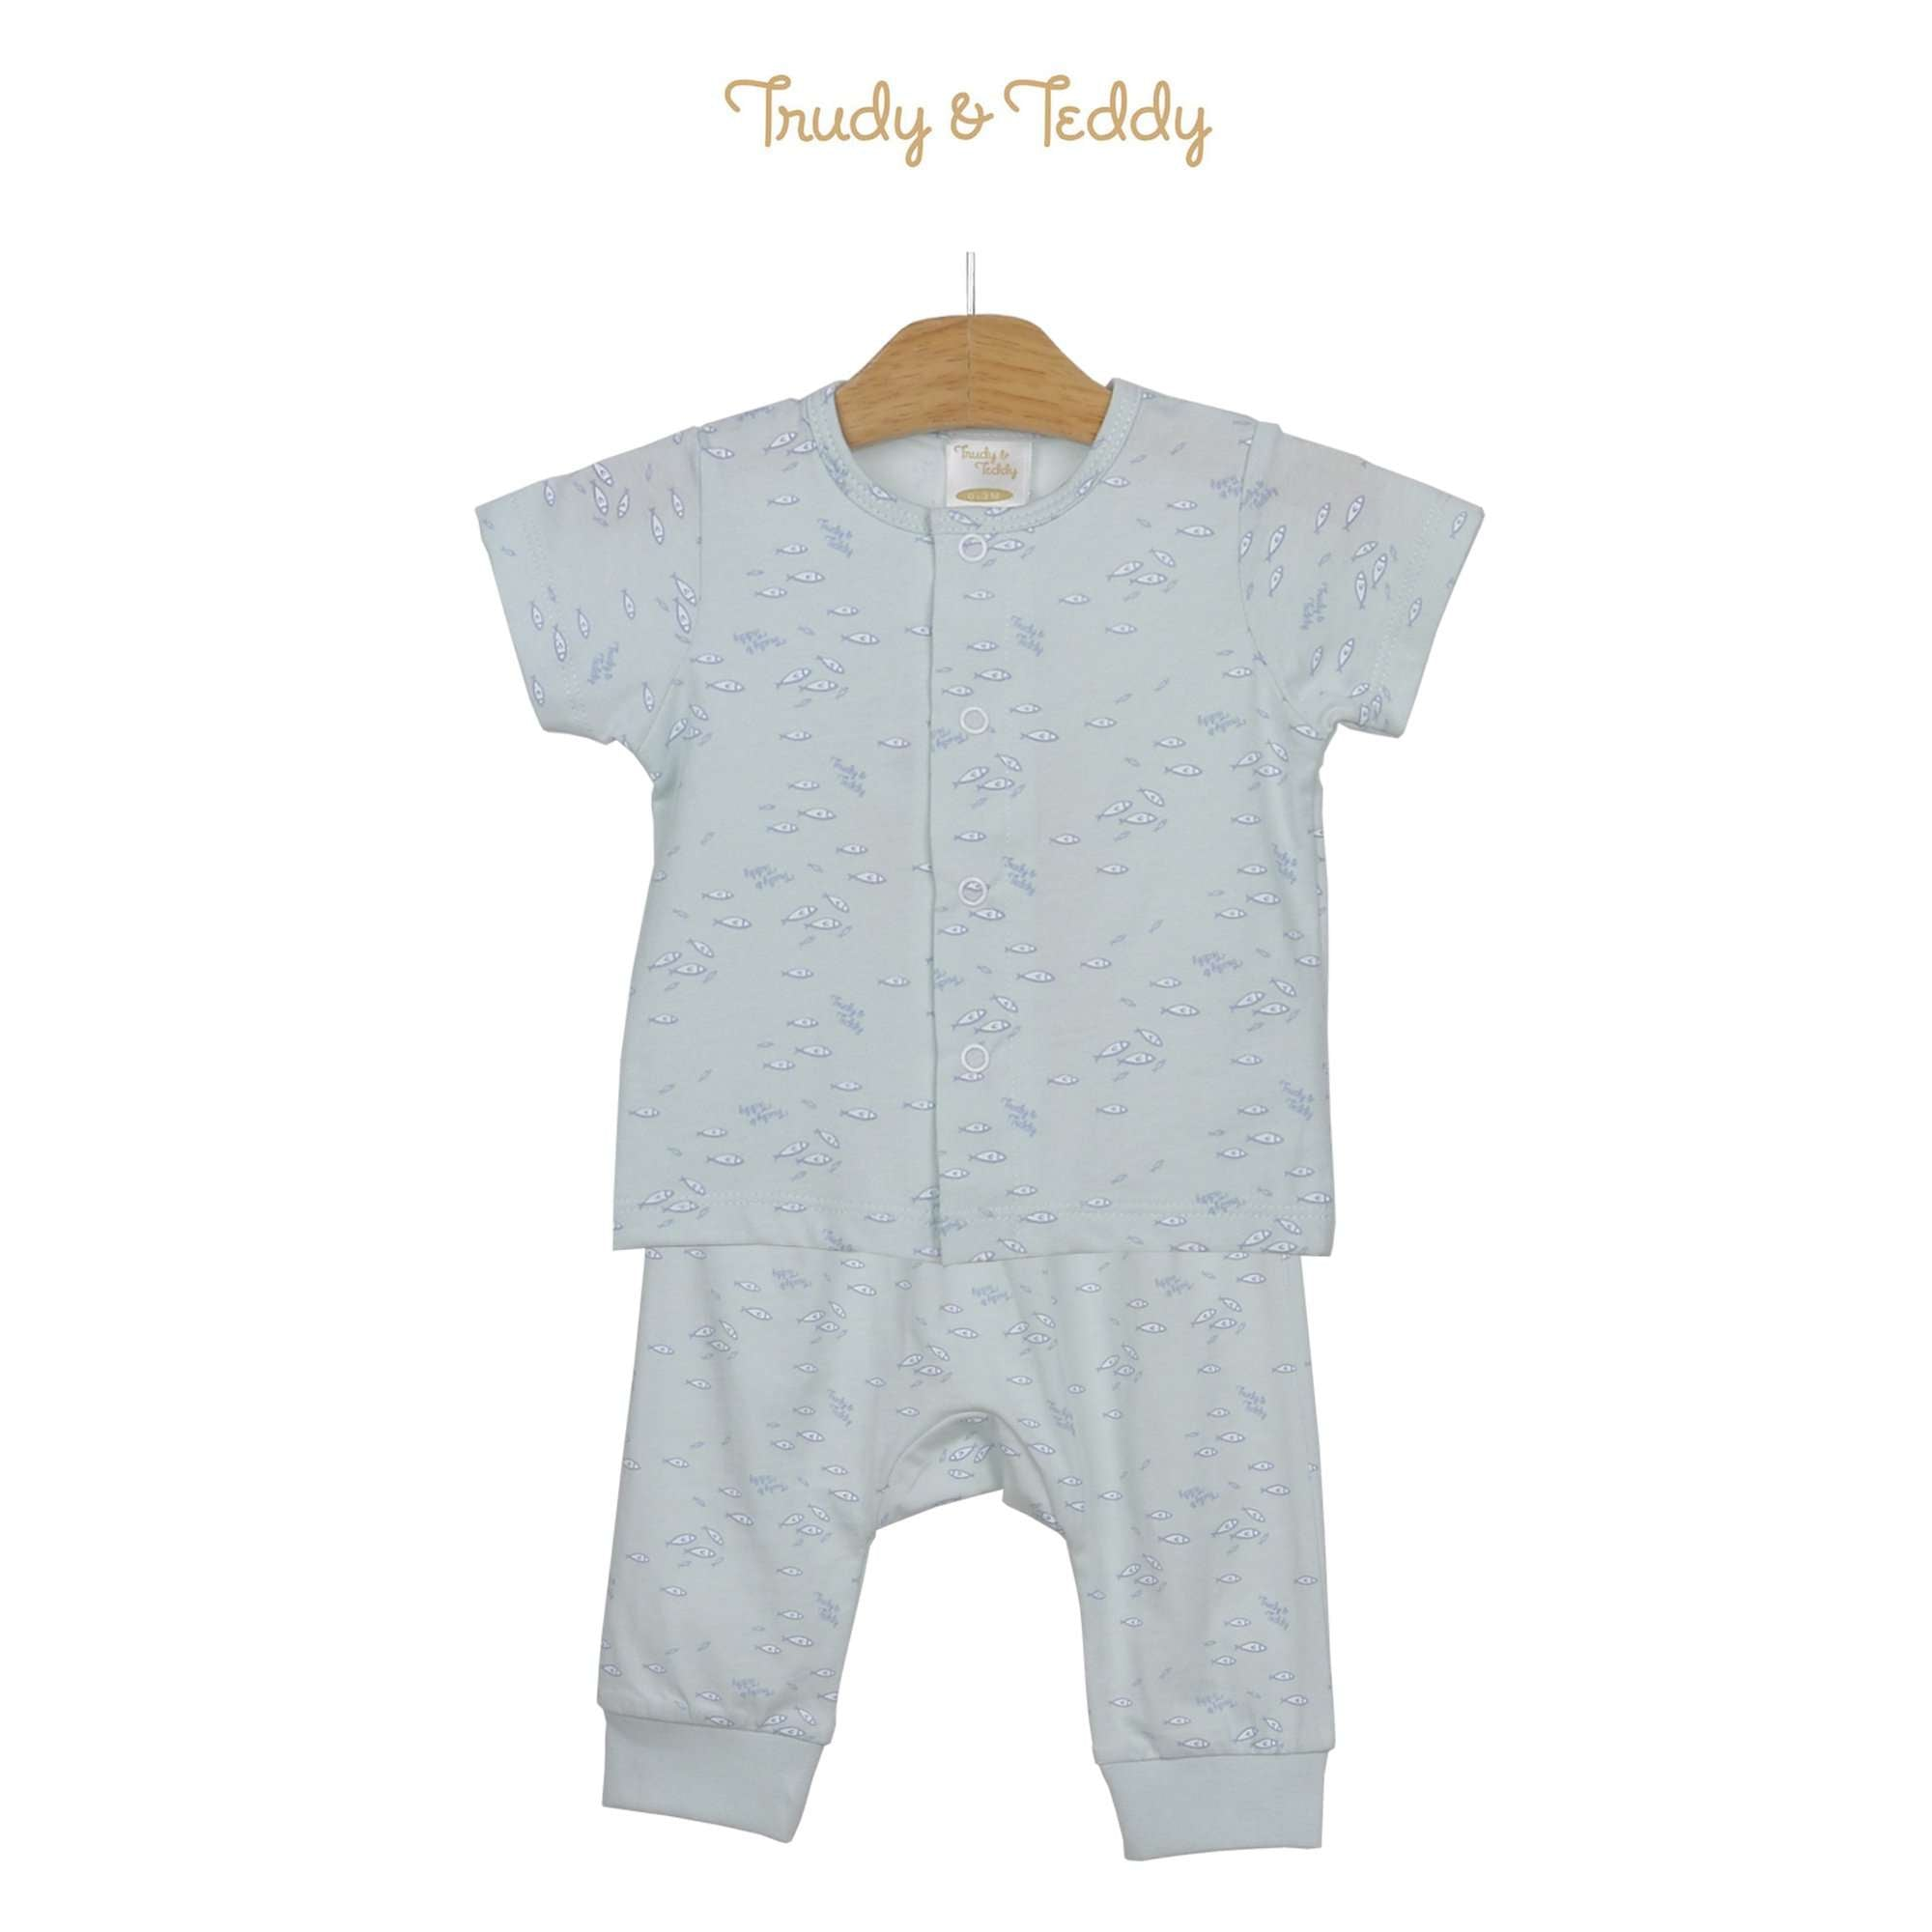 Trudy & Teddy Baby Boy Short Sleeve Long Pants Suit 820038-421 : Buy Trudy & Teddy online at CMG.MY